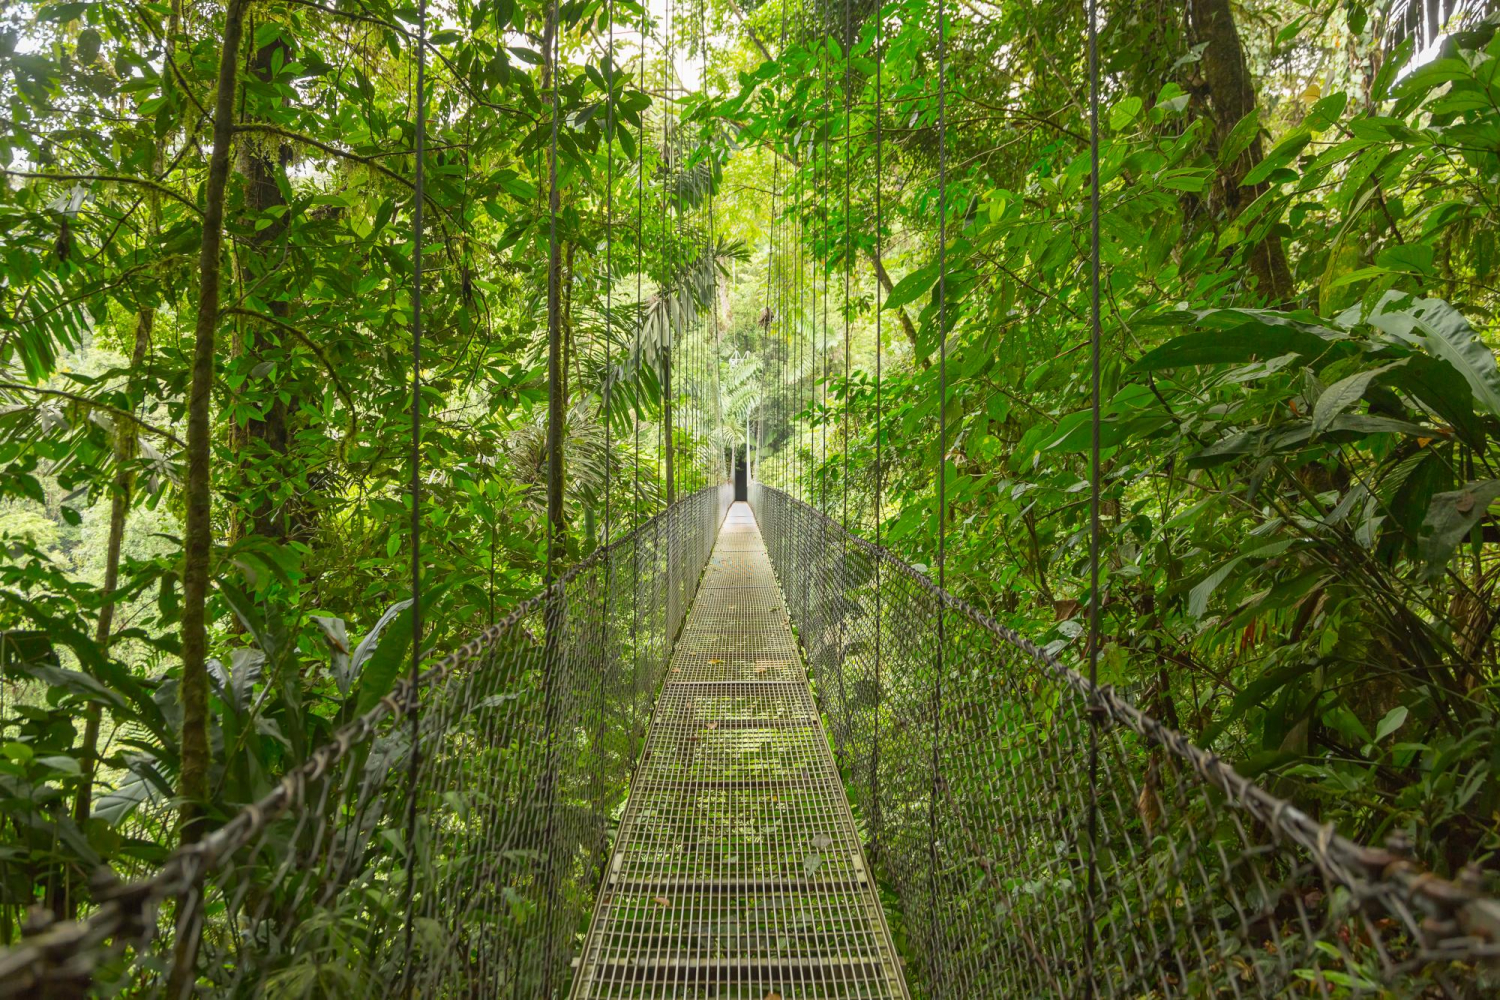 Hanging,Bridge,At,Natural,Rainforest,Park,In,Costa,Rica